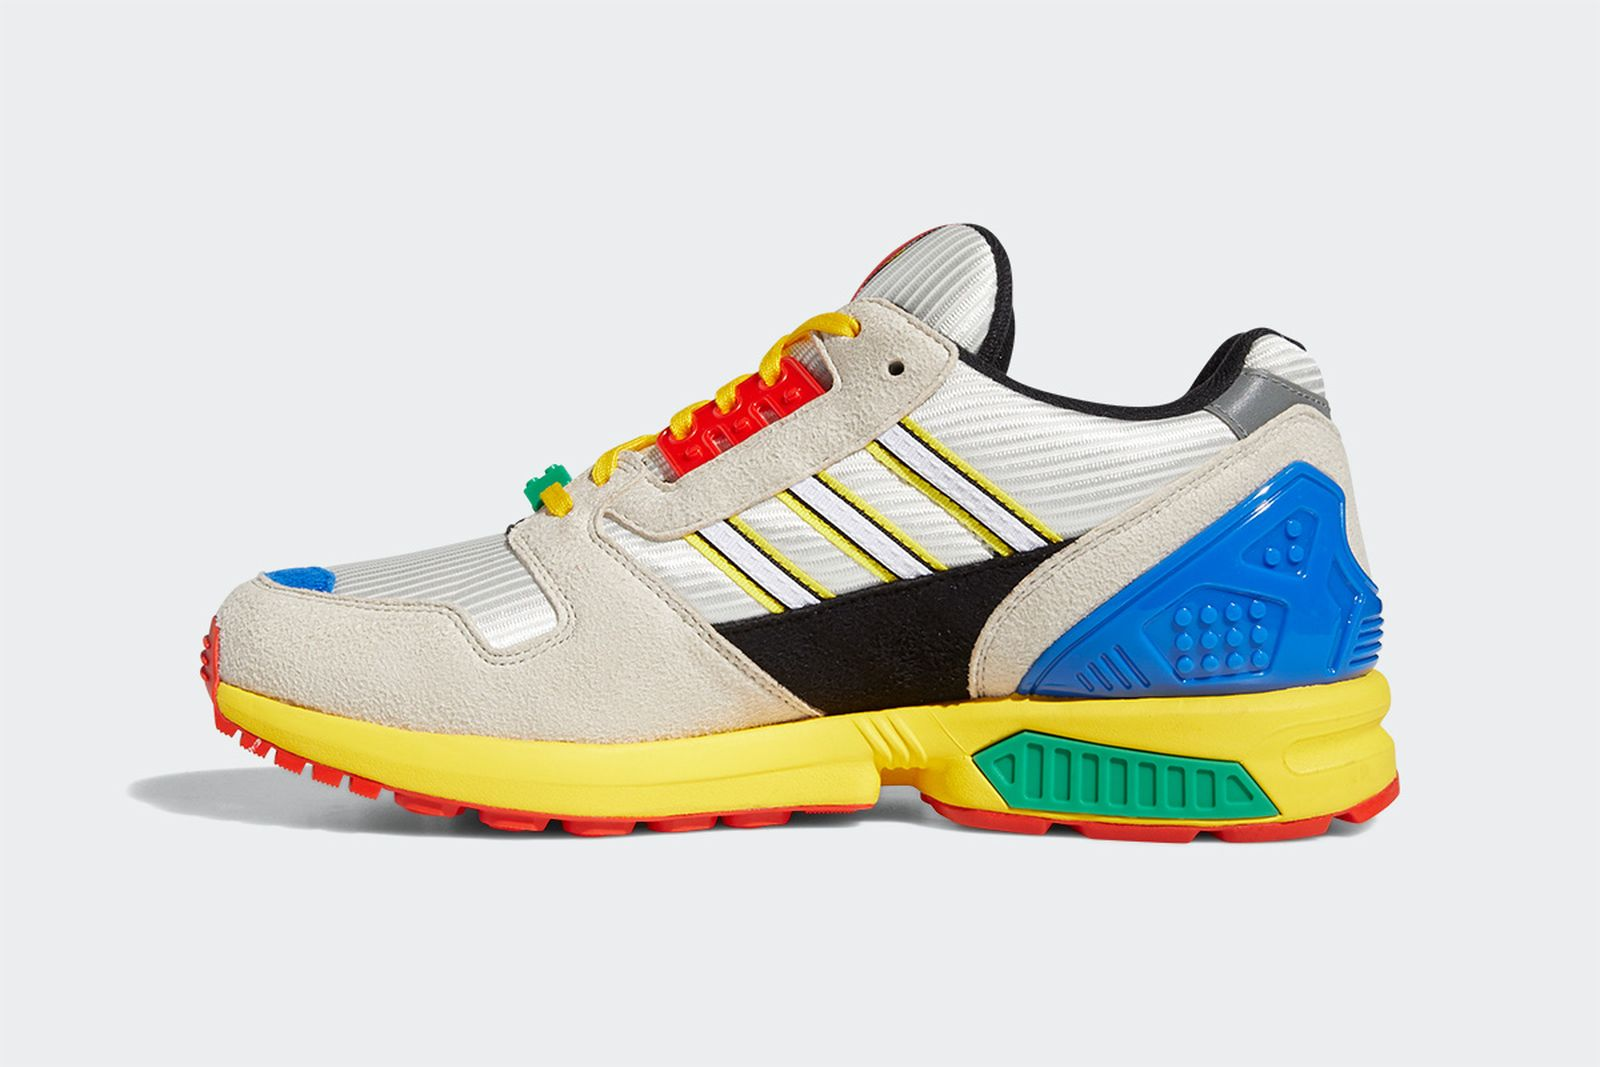 lego-adidas-zx-8000-release-date-price-07